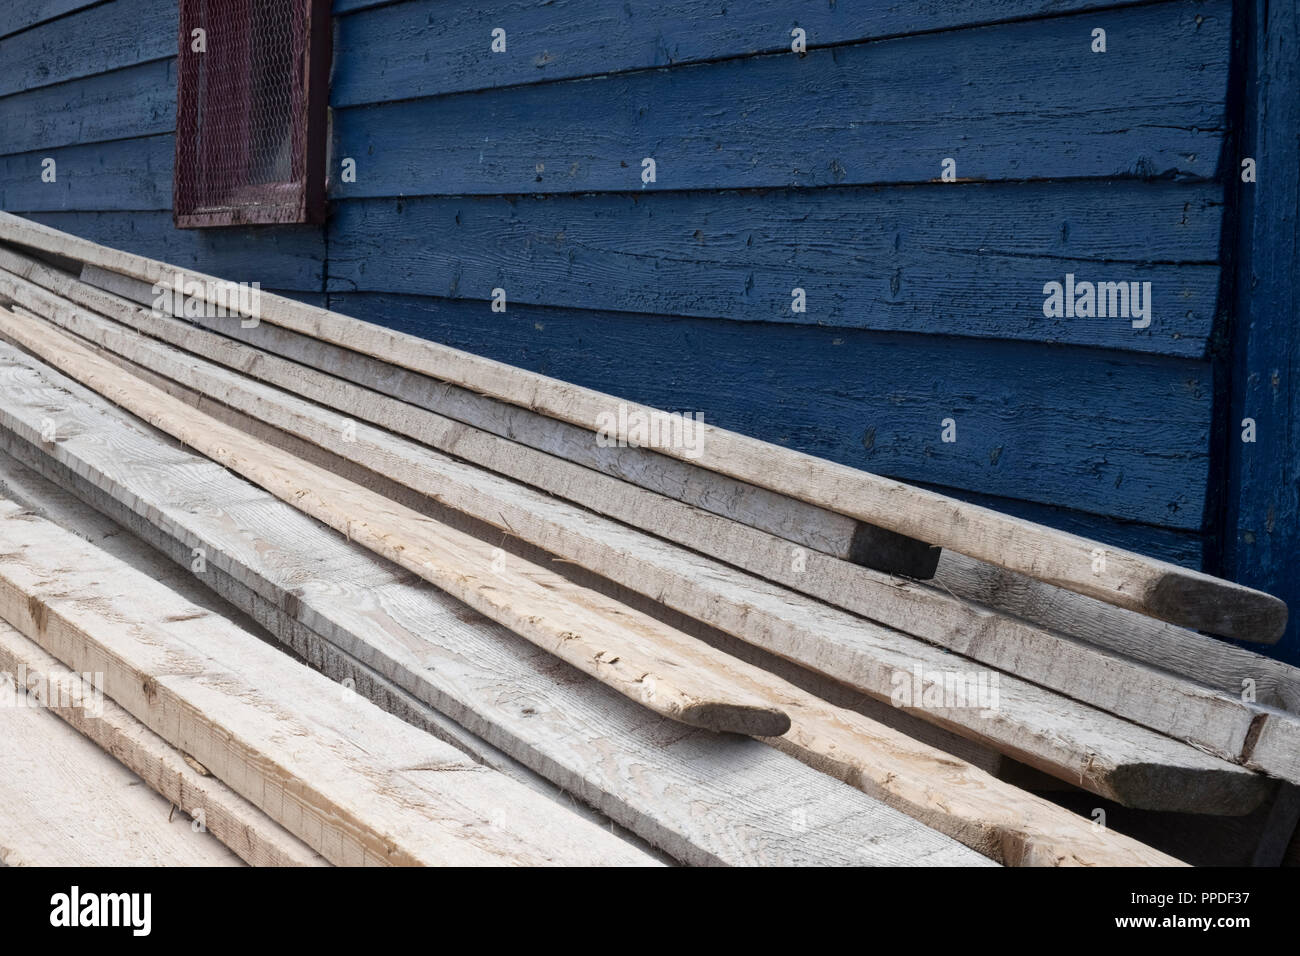 Closeup of blue wooden shed with wooden planks stacked alongside. - Stock Image